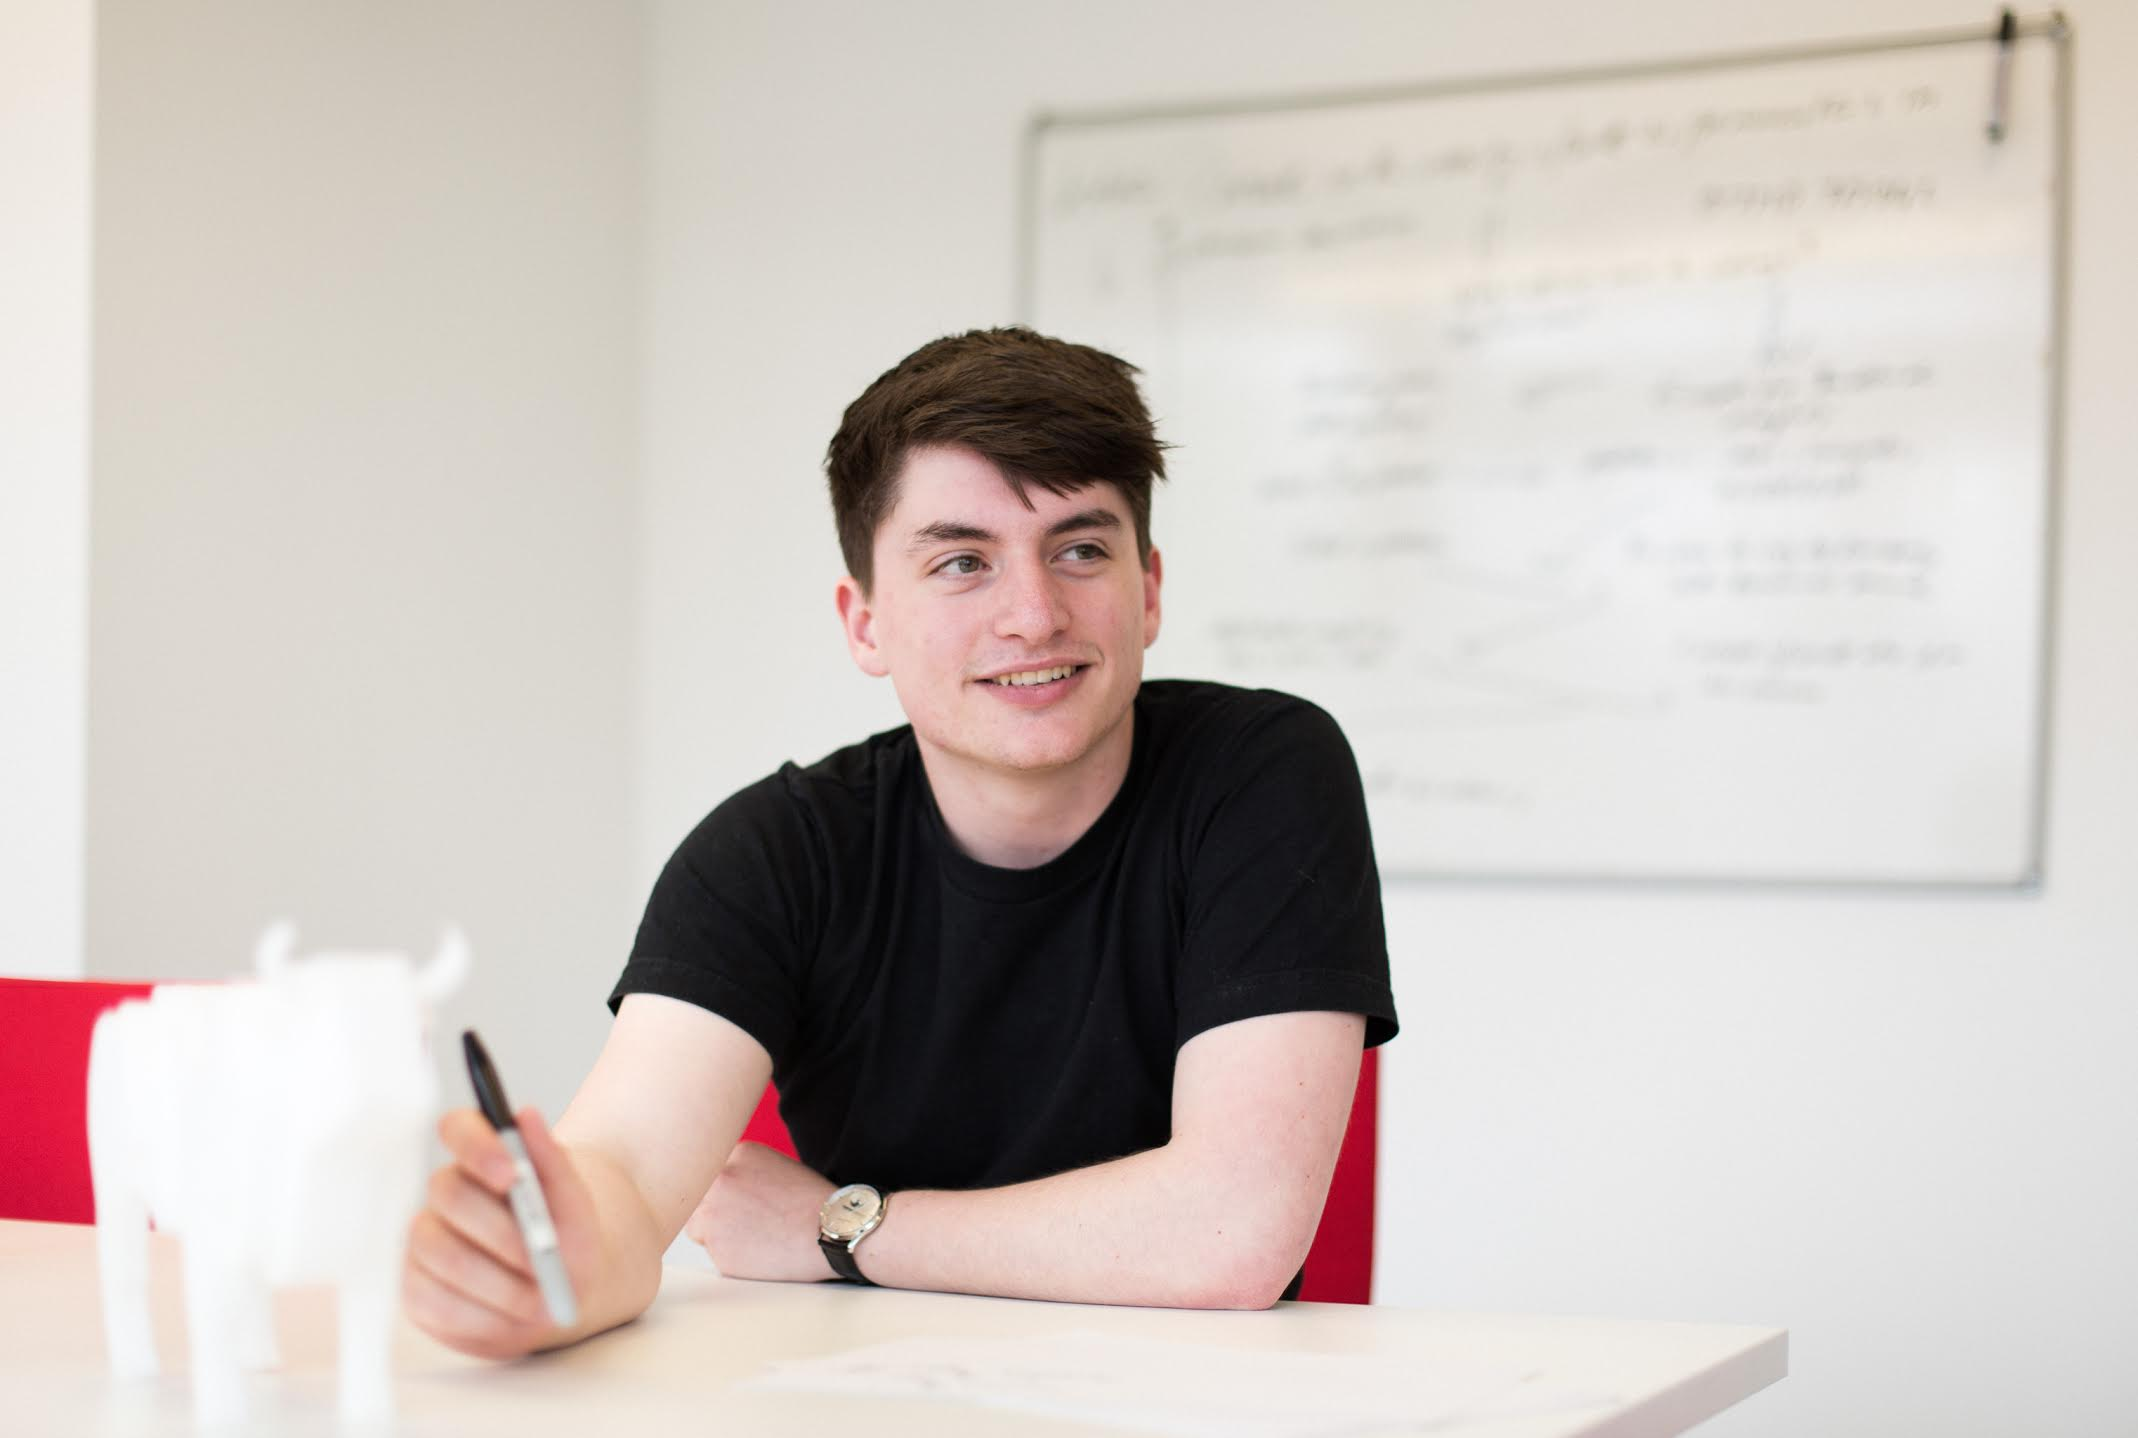 Josh Valman, 21, MD of RPD International - a global manufacturing company with a multi-million pound valuation